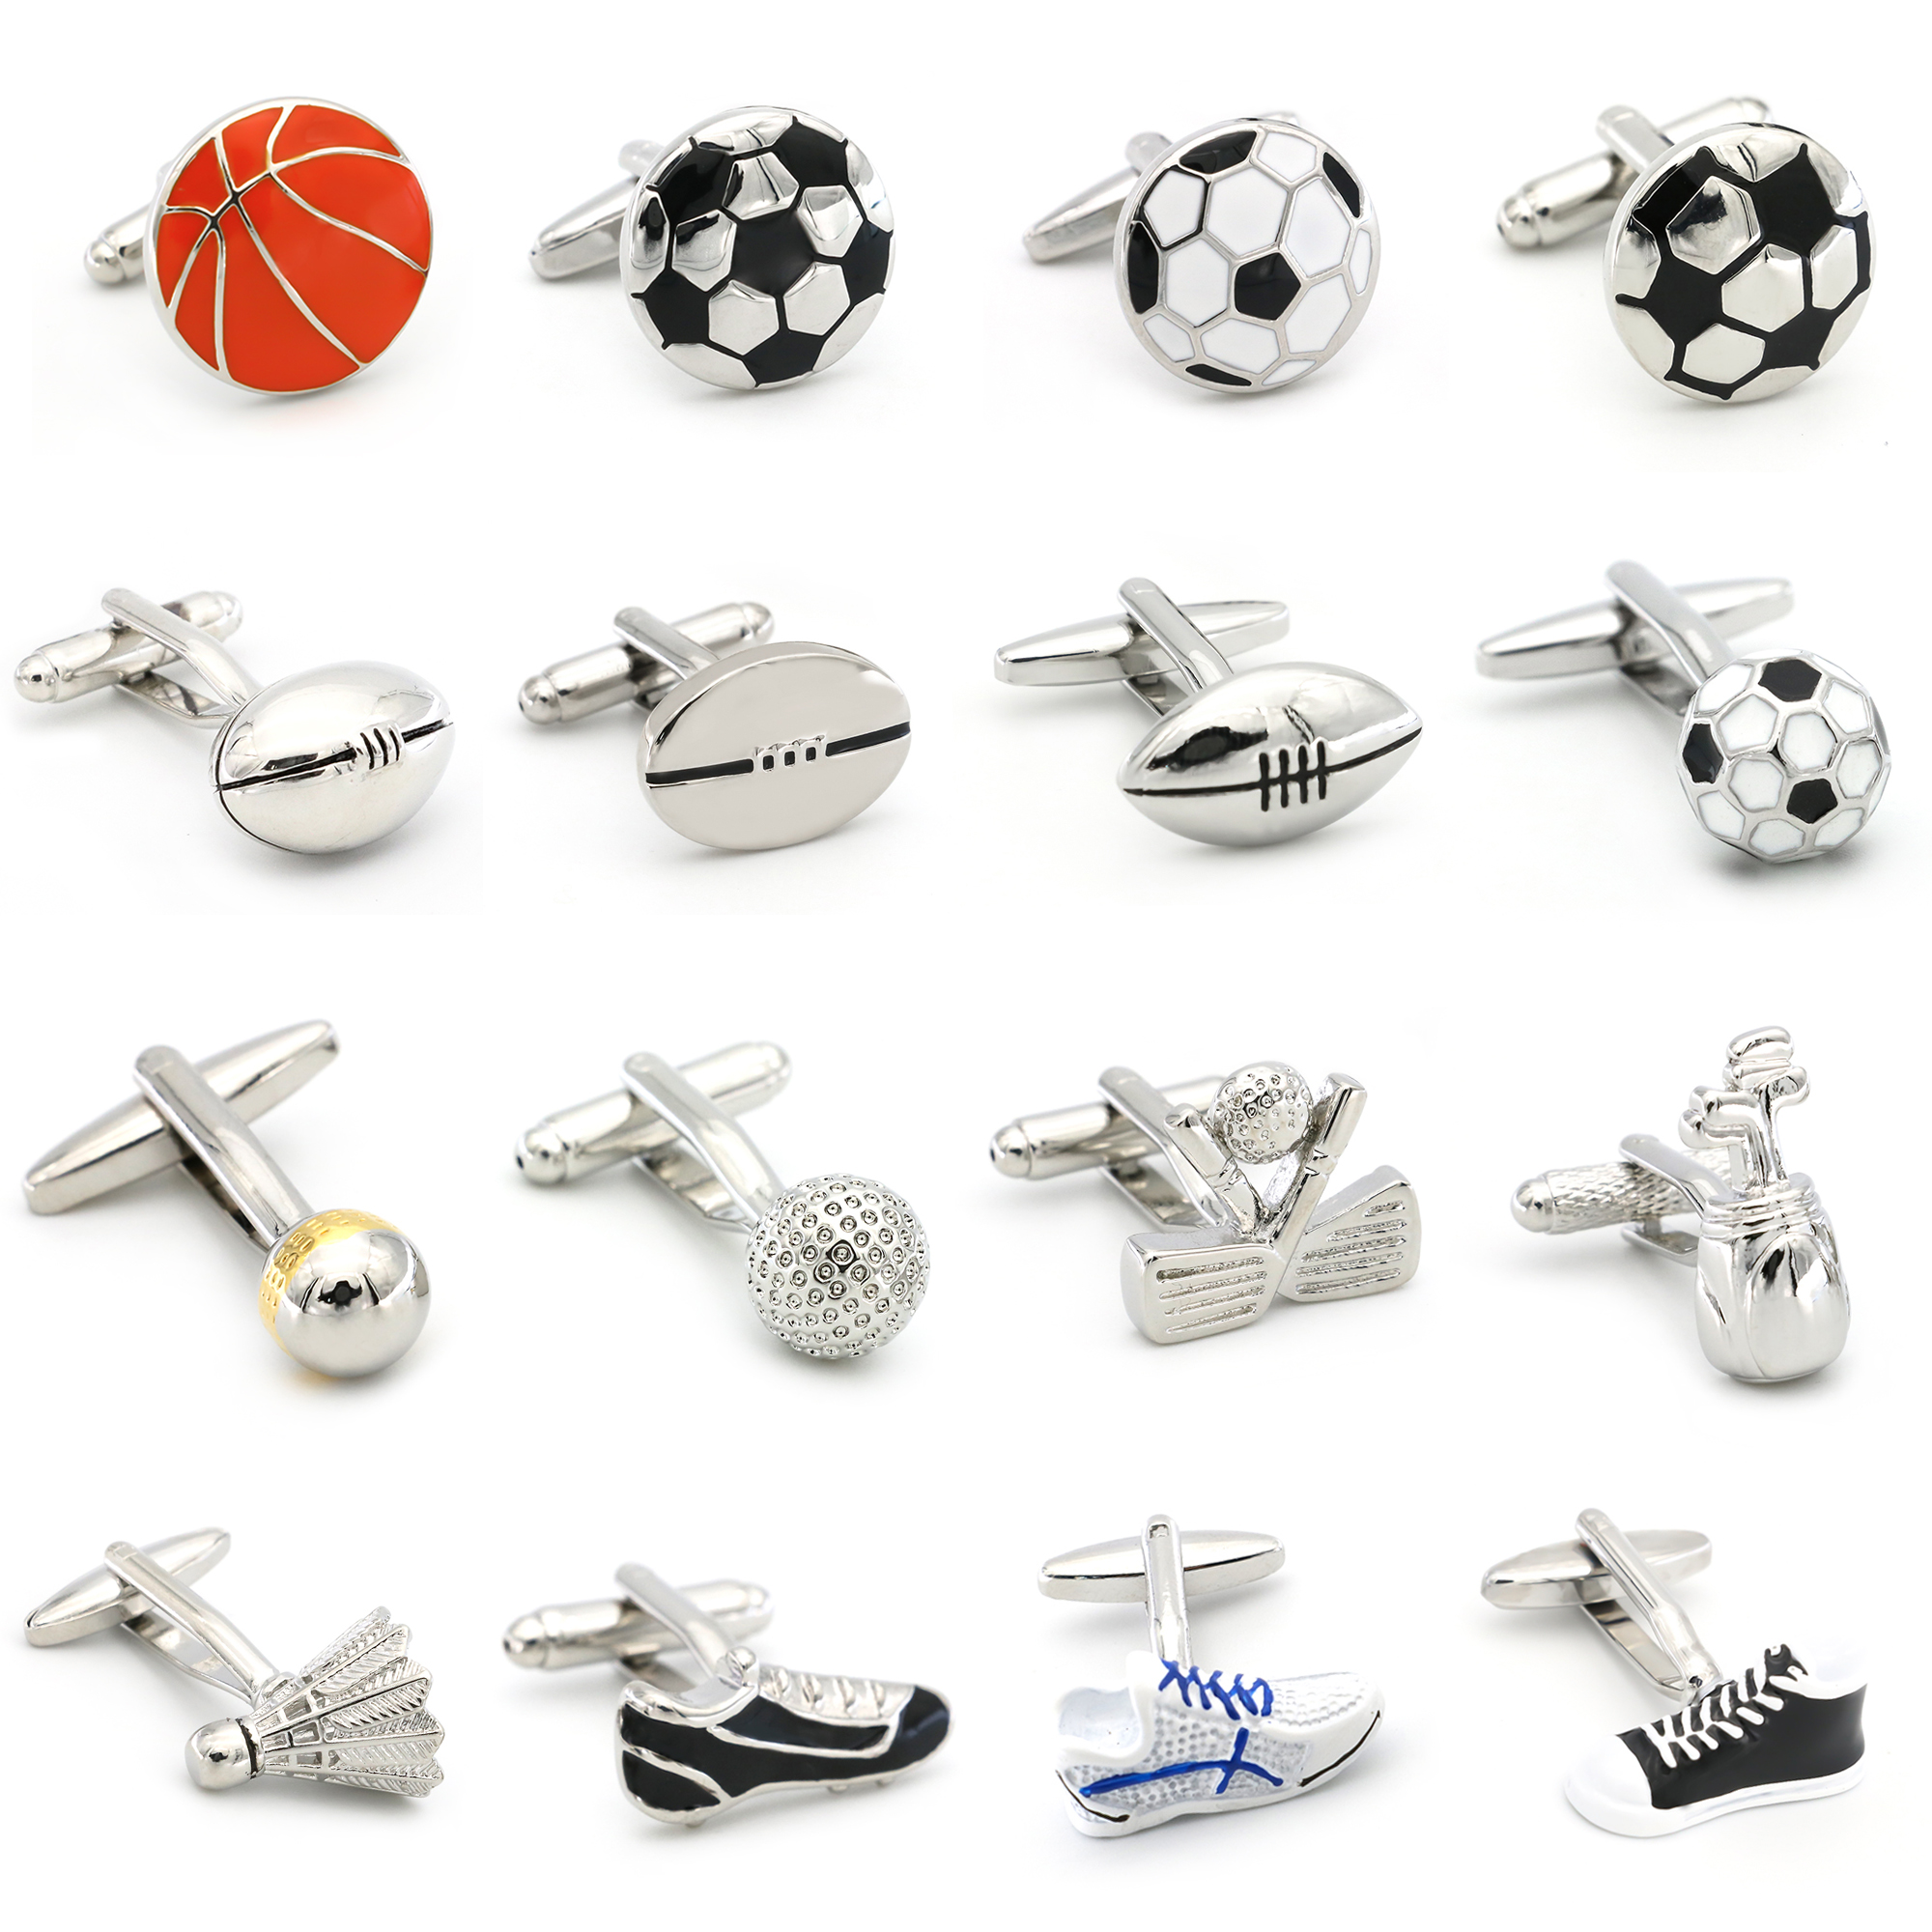 Free Shipping Men's <font><b>Cufflinks</b></font> Wholesale Sport Series Rugby <font><b>Golf</b></font> Football Tennis Design Fashion Cuff Links For Men Copper Quality image